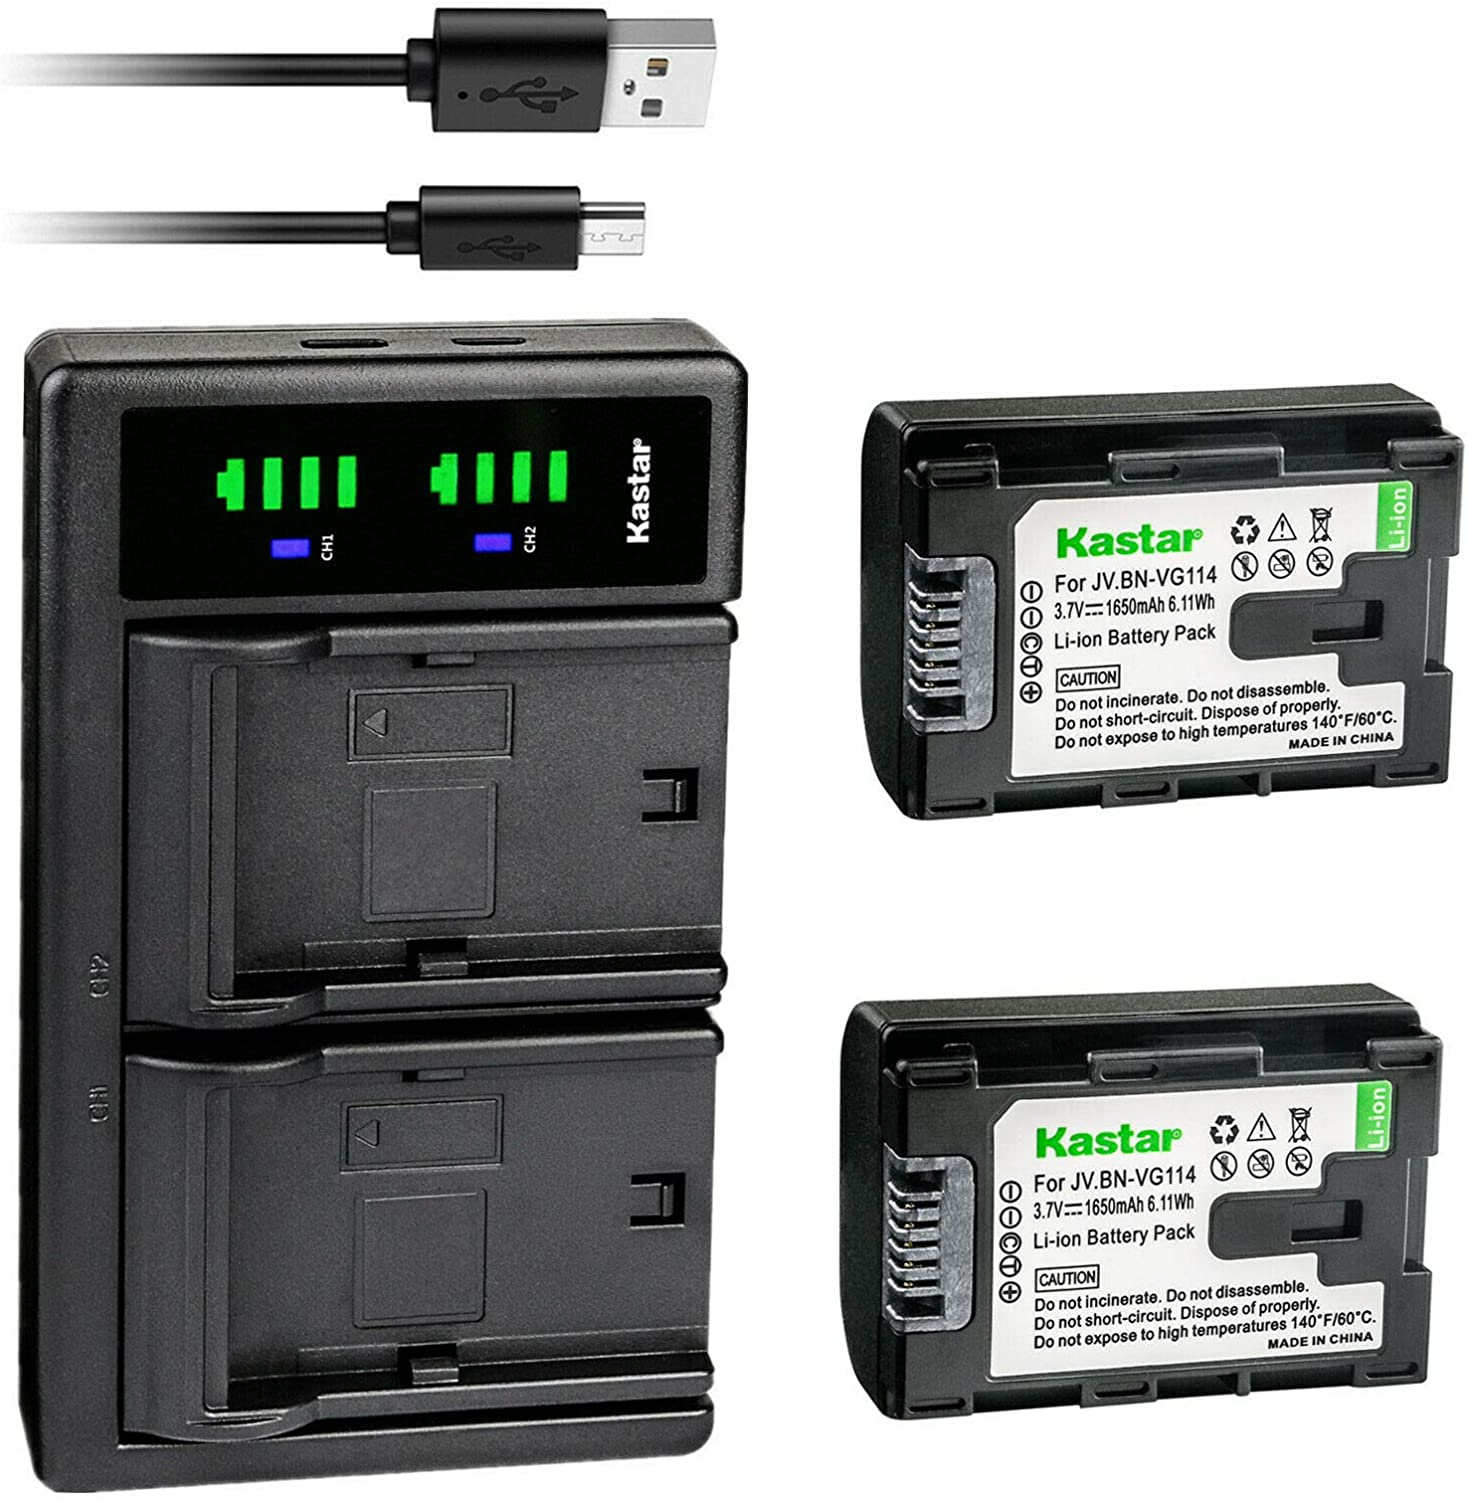 Fees free!! Kastar 2-Pack Battery and LTD2 USB JVC Charger B Replacement for Outlet SALE